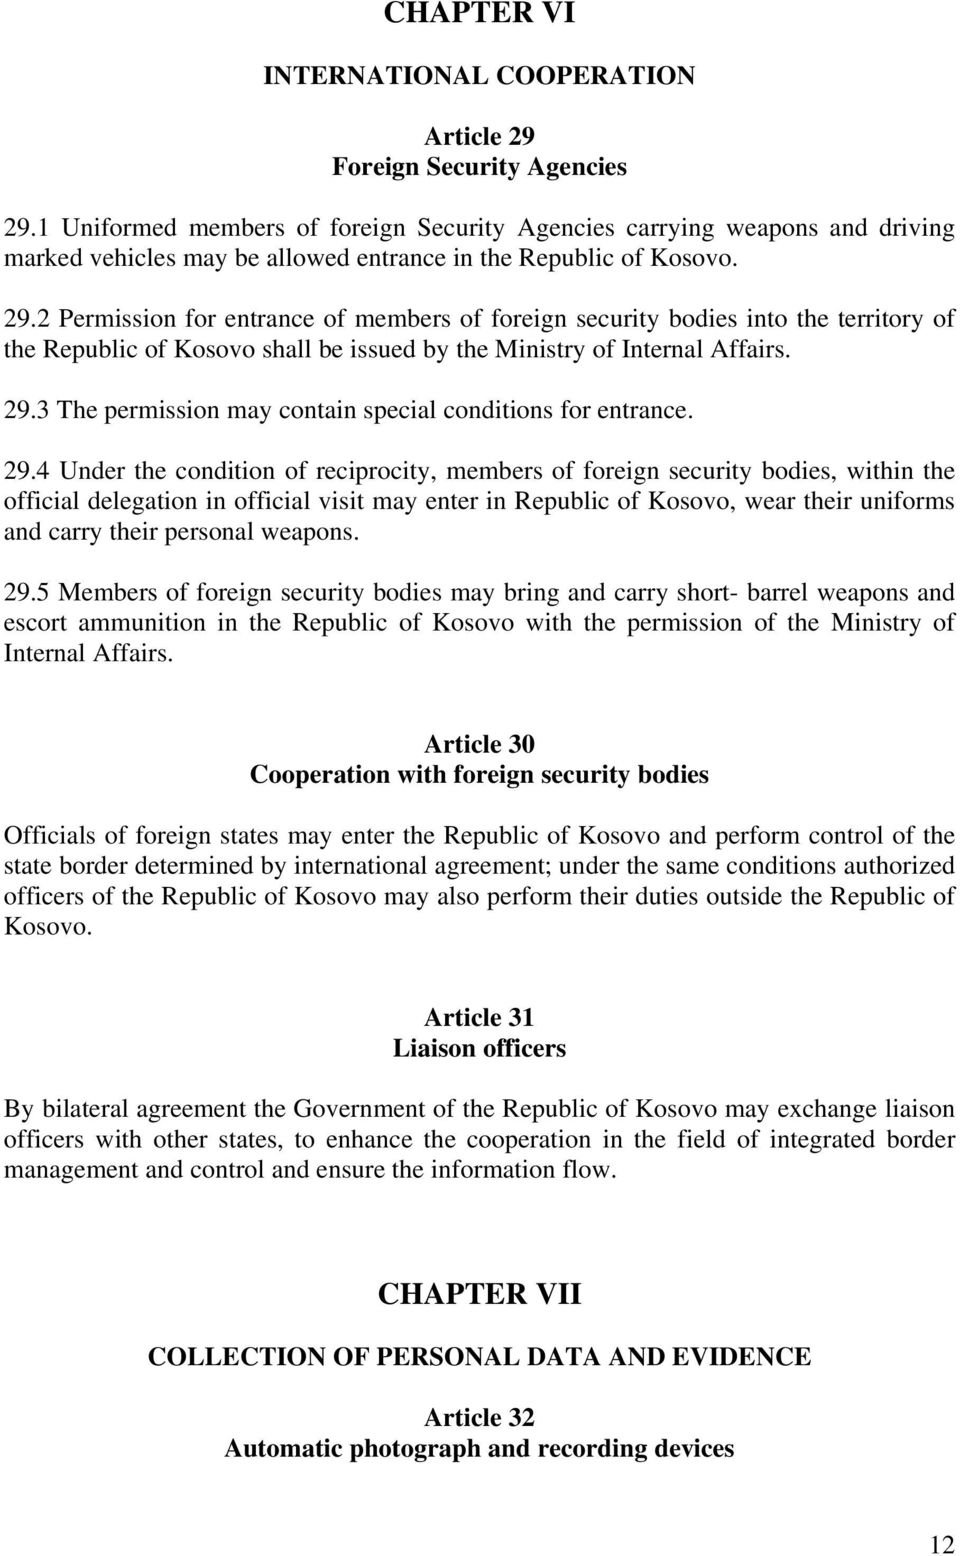 2 Permission for entrance of members of foreign security bodies into the territory of the Republic of Kosovo shall be issued by the Ministry of Internal Affairs. 29.